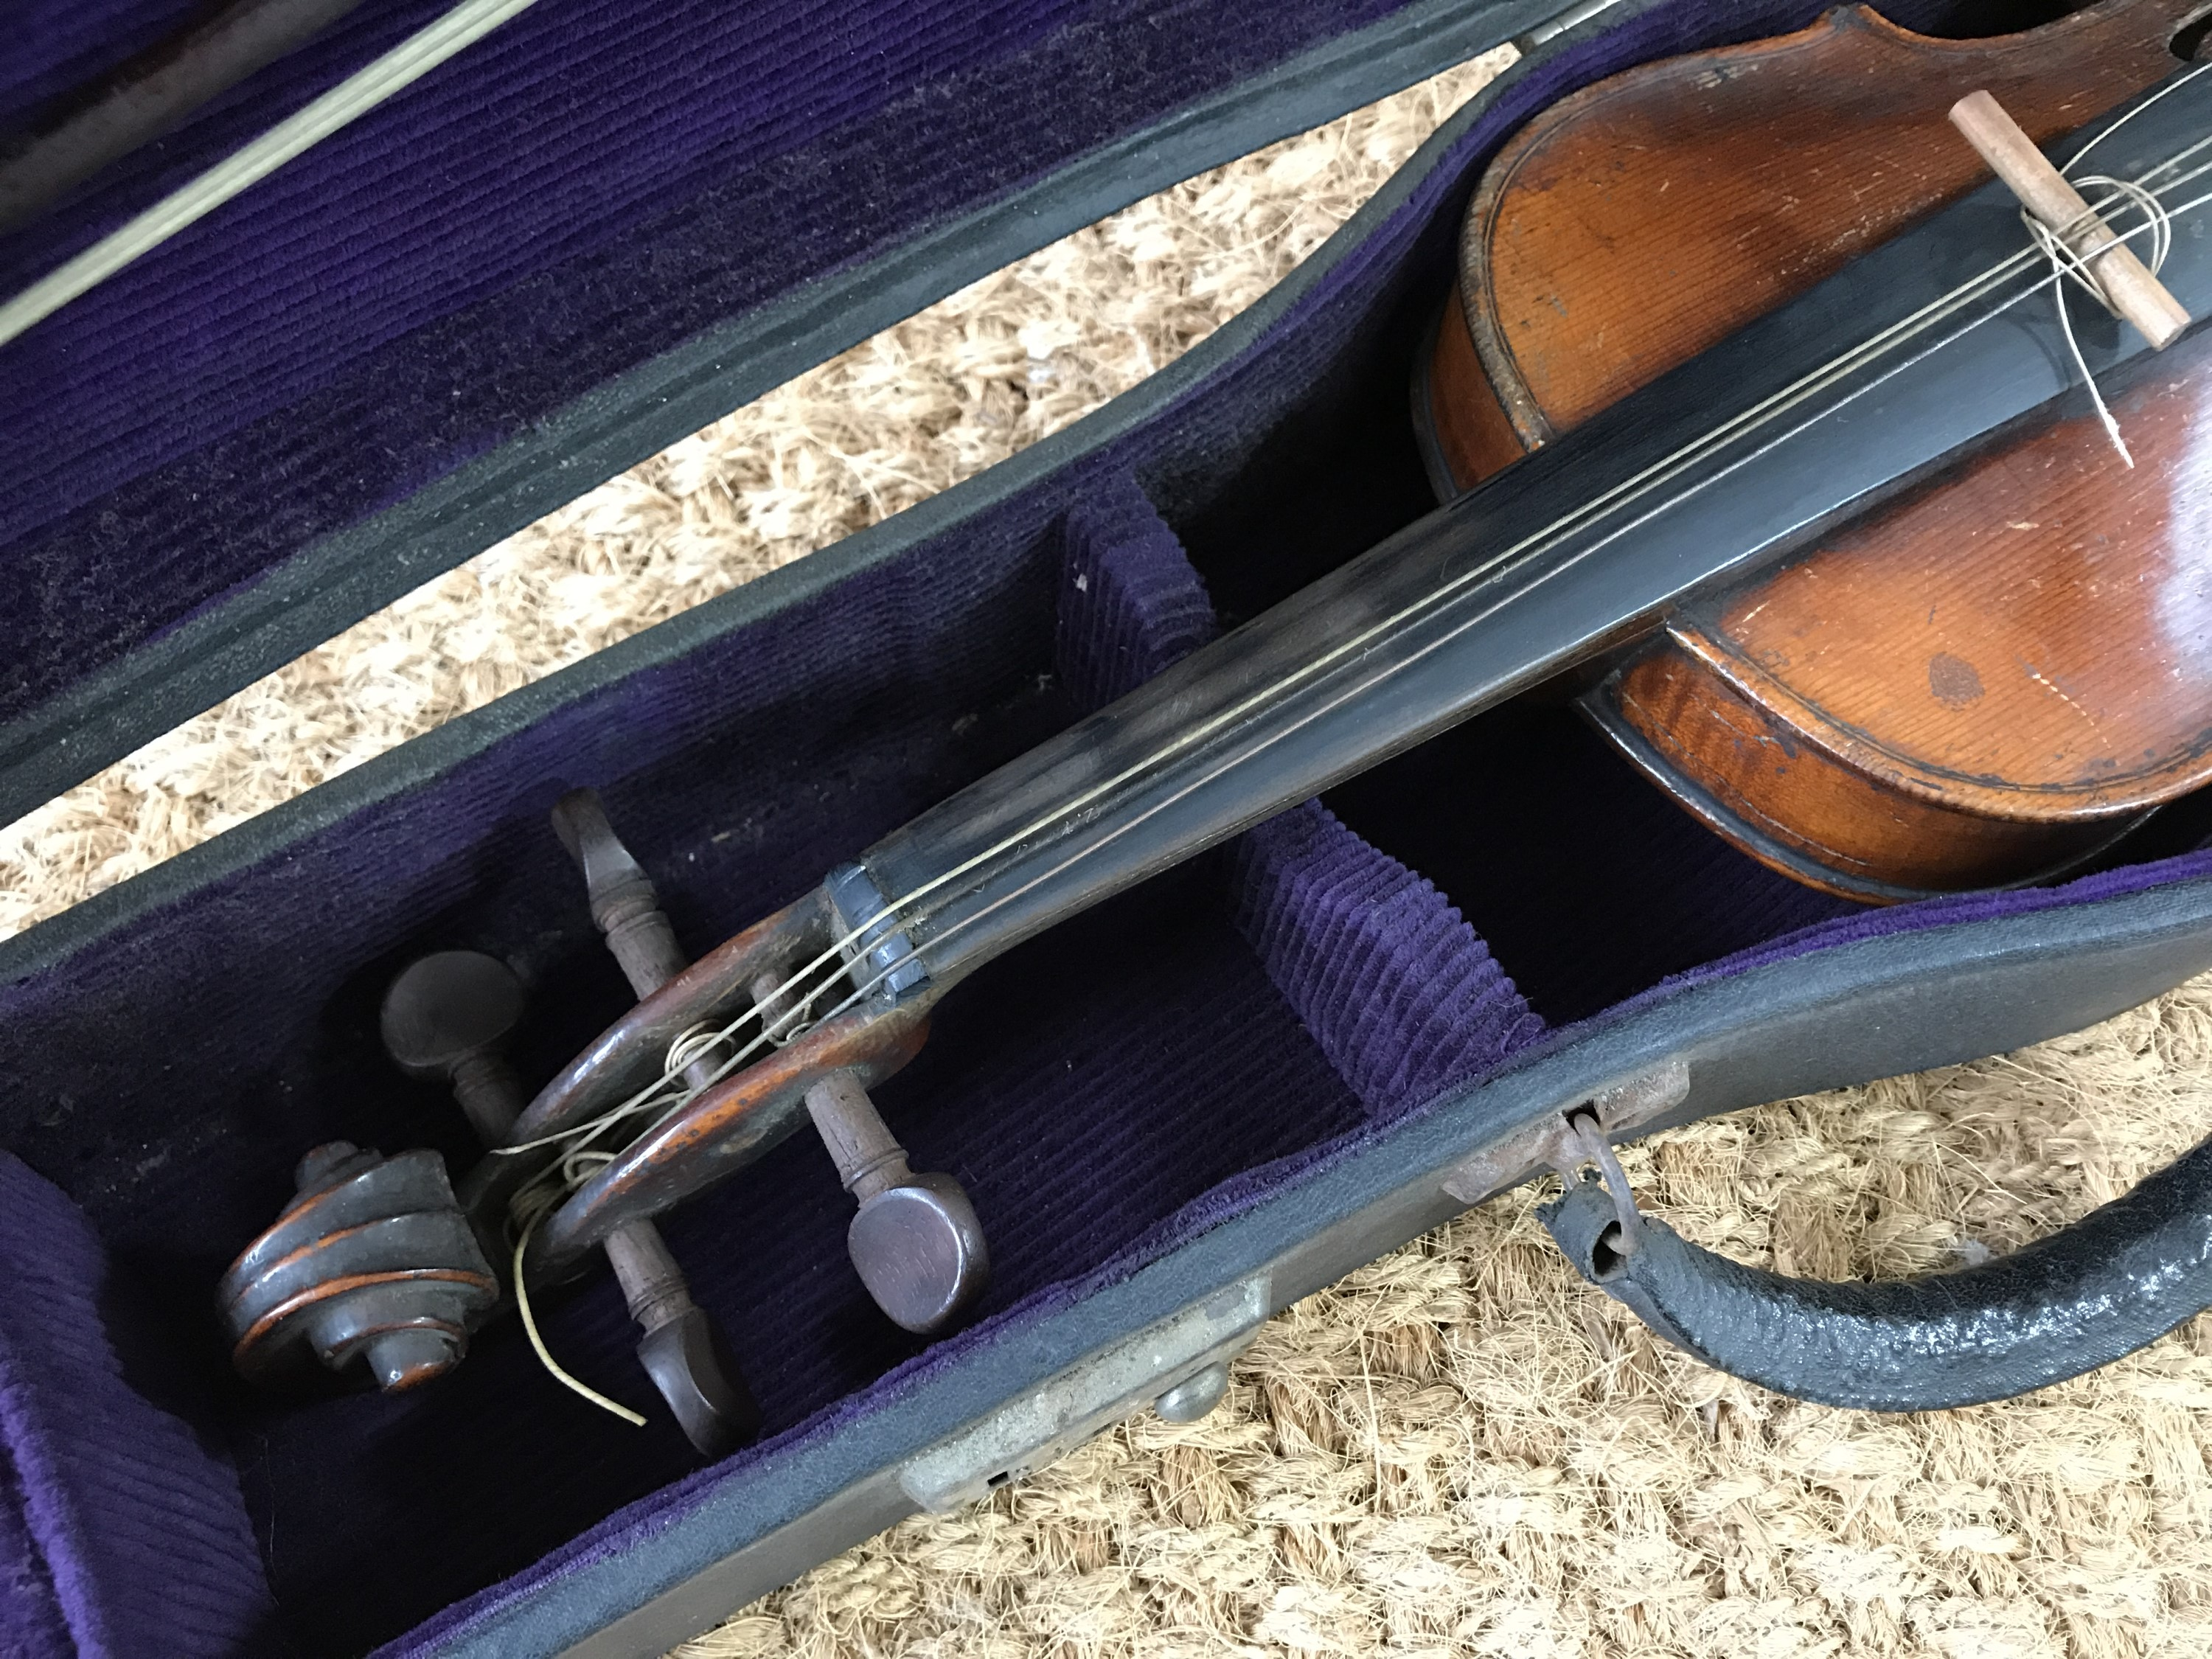 Lot 19 - A late 19th Century German violin marked Hopf, having one-piece back with 'Hopf' branding, and